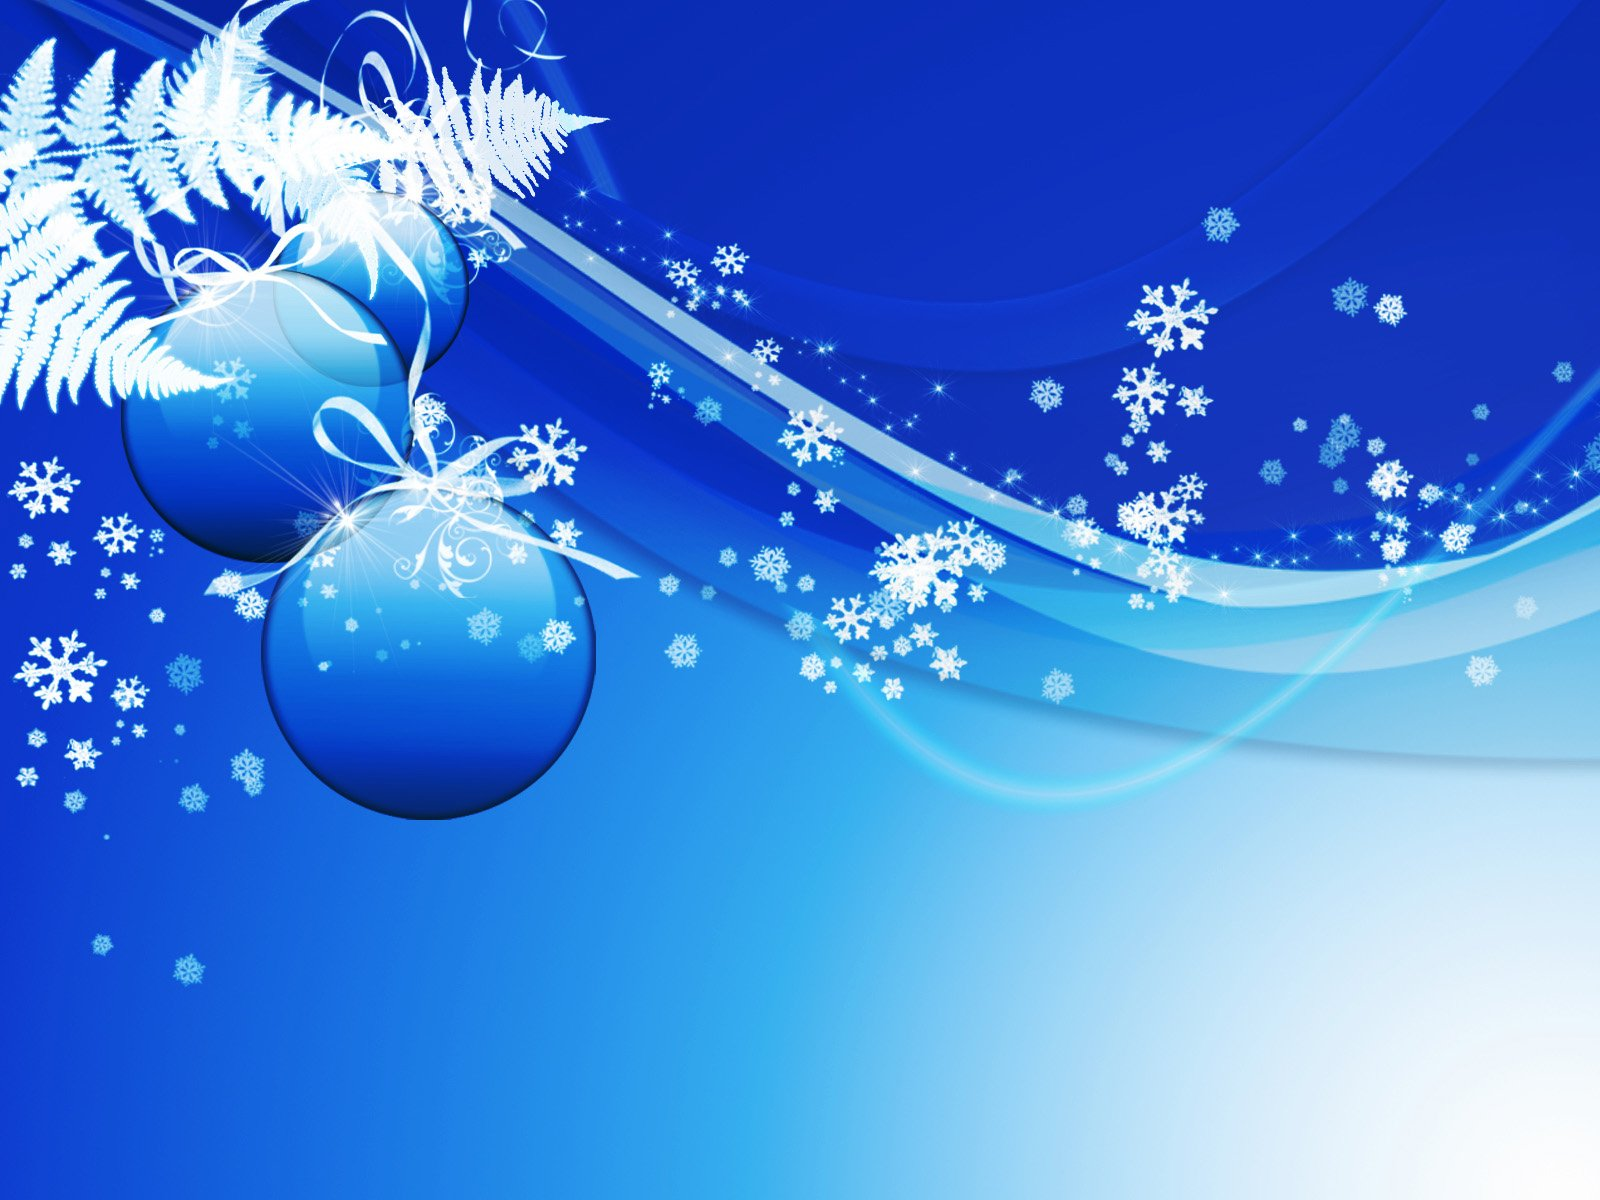 wallpapers Put a little seasonal cheer on your destop with these 1600x1200